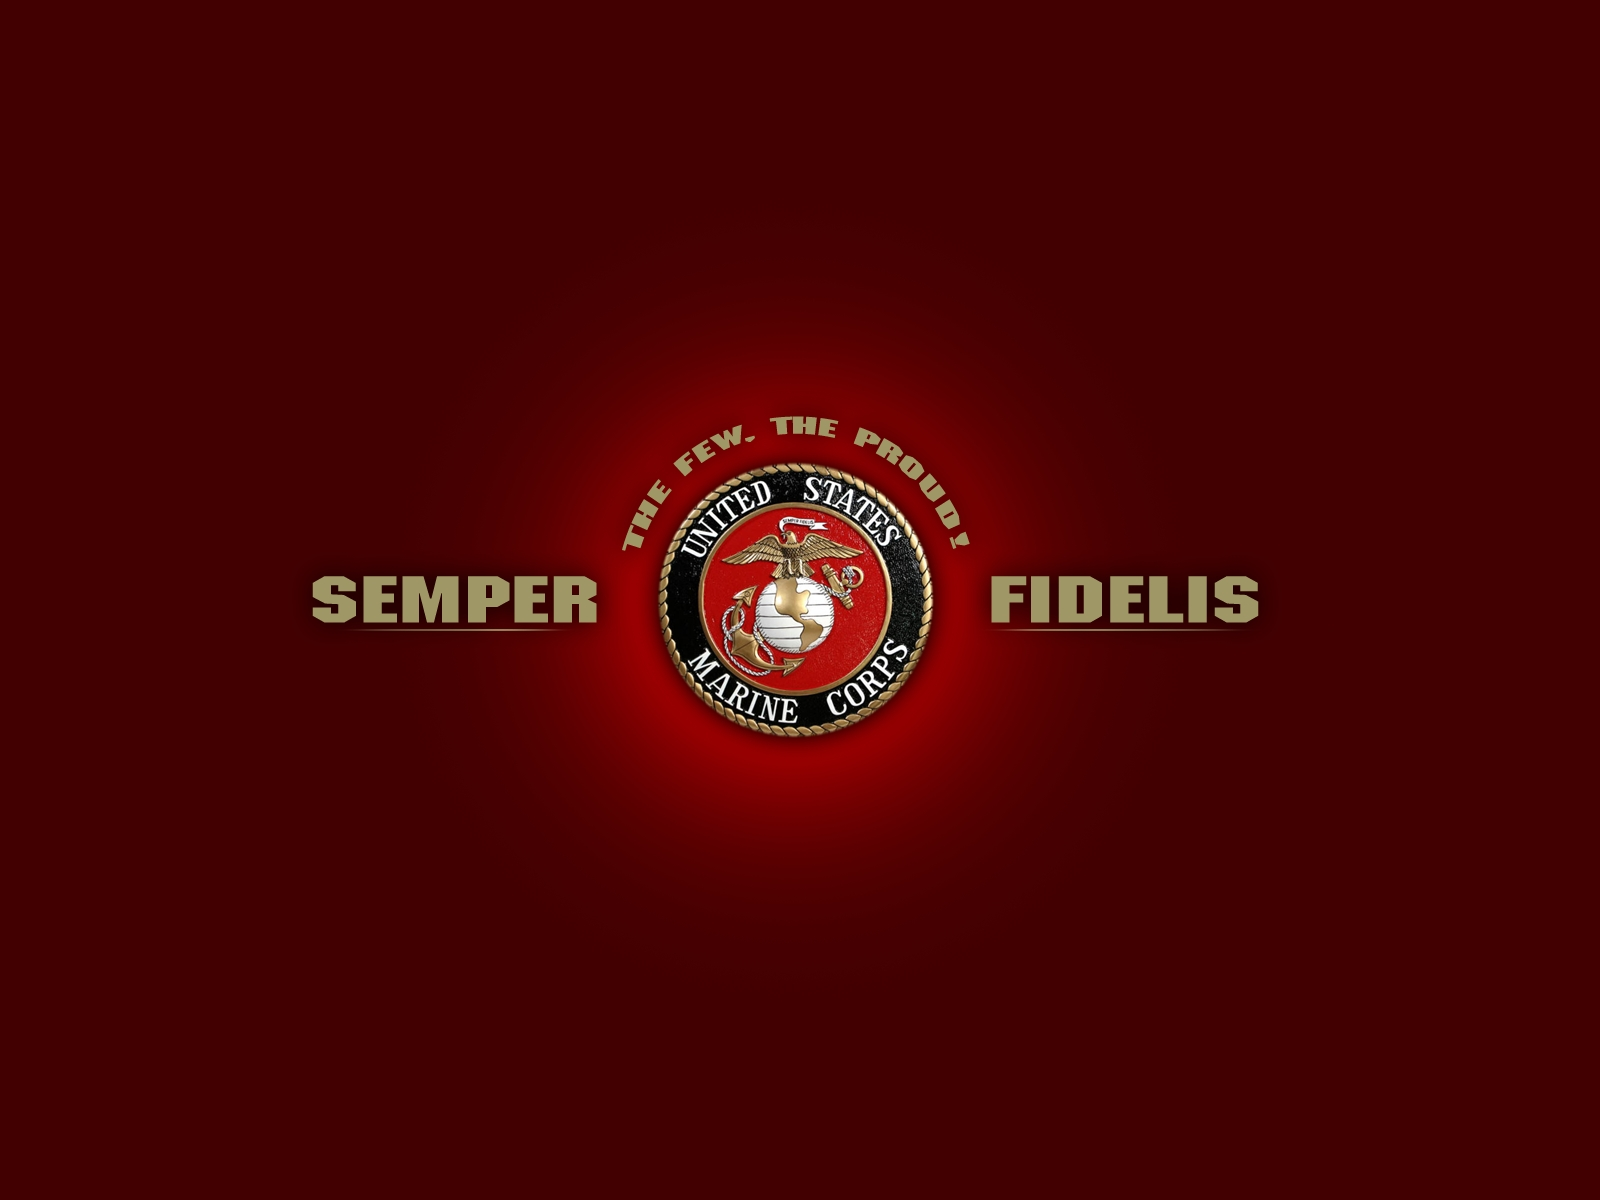 now you are able to find free us marines desktop wallpapers on